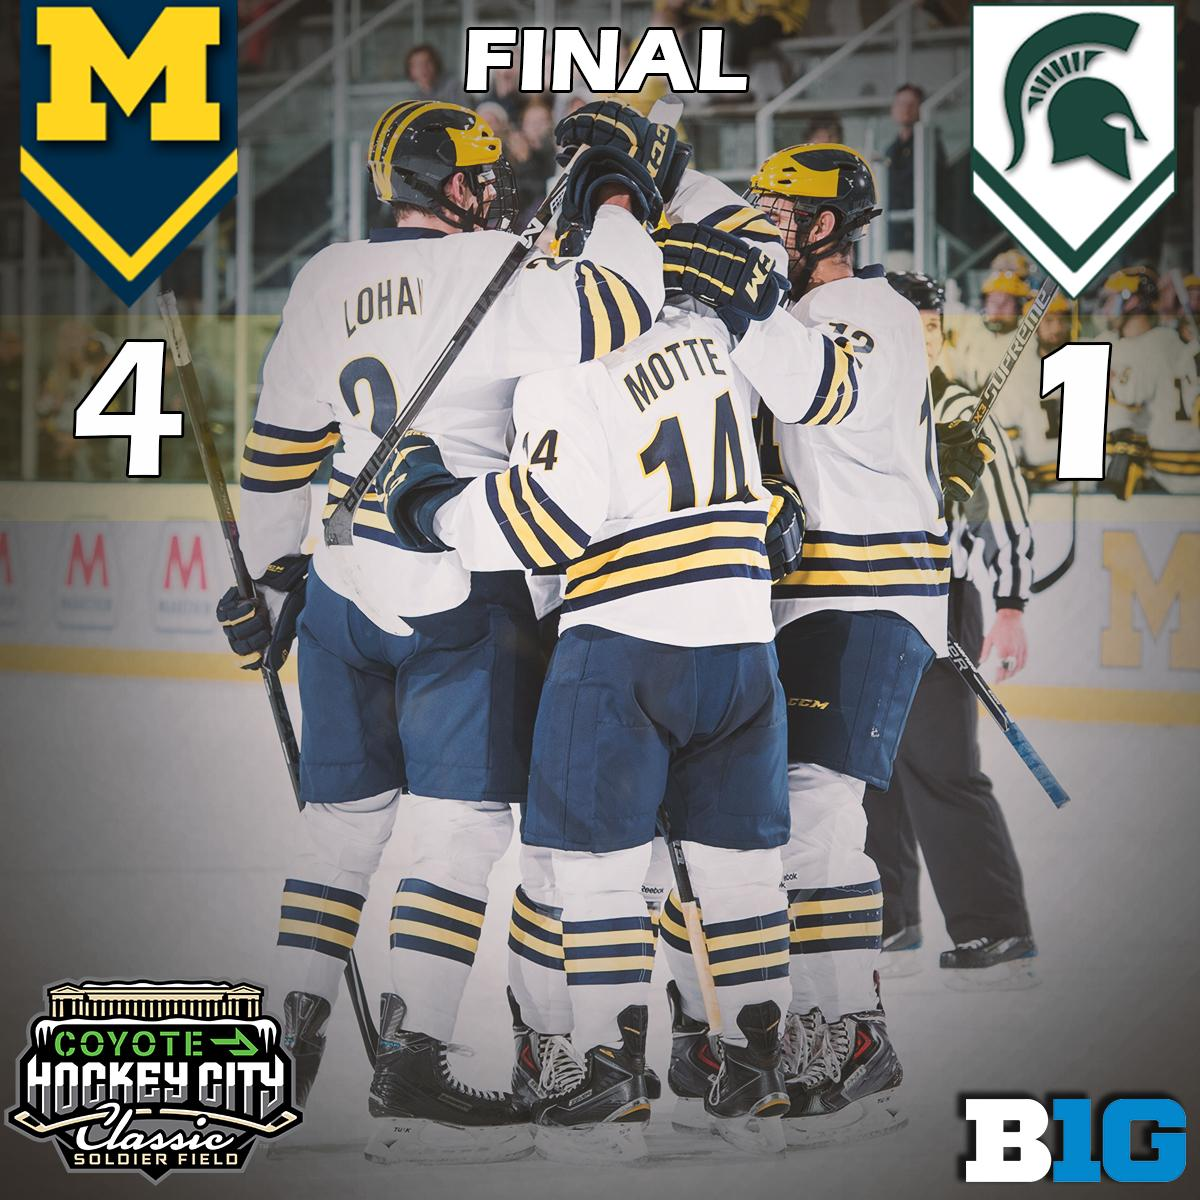 That's all she wrote folks, as Michigan beats Michigan State under the stars in Chicago #GoBlue http://t.co/dZG7vceAYL